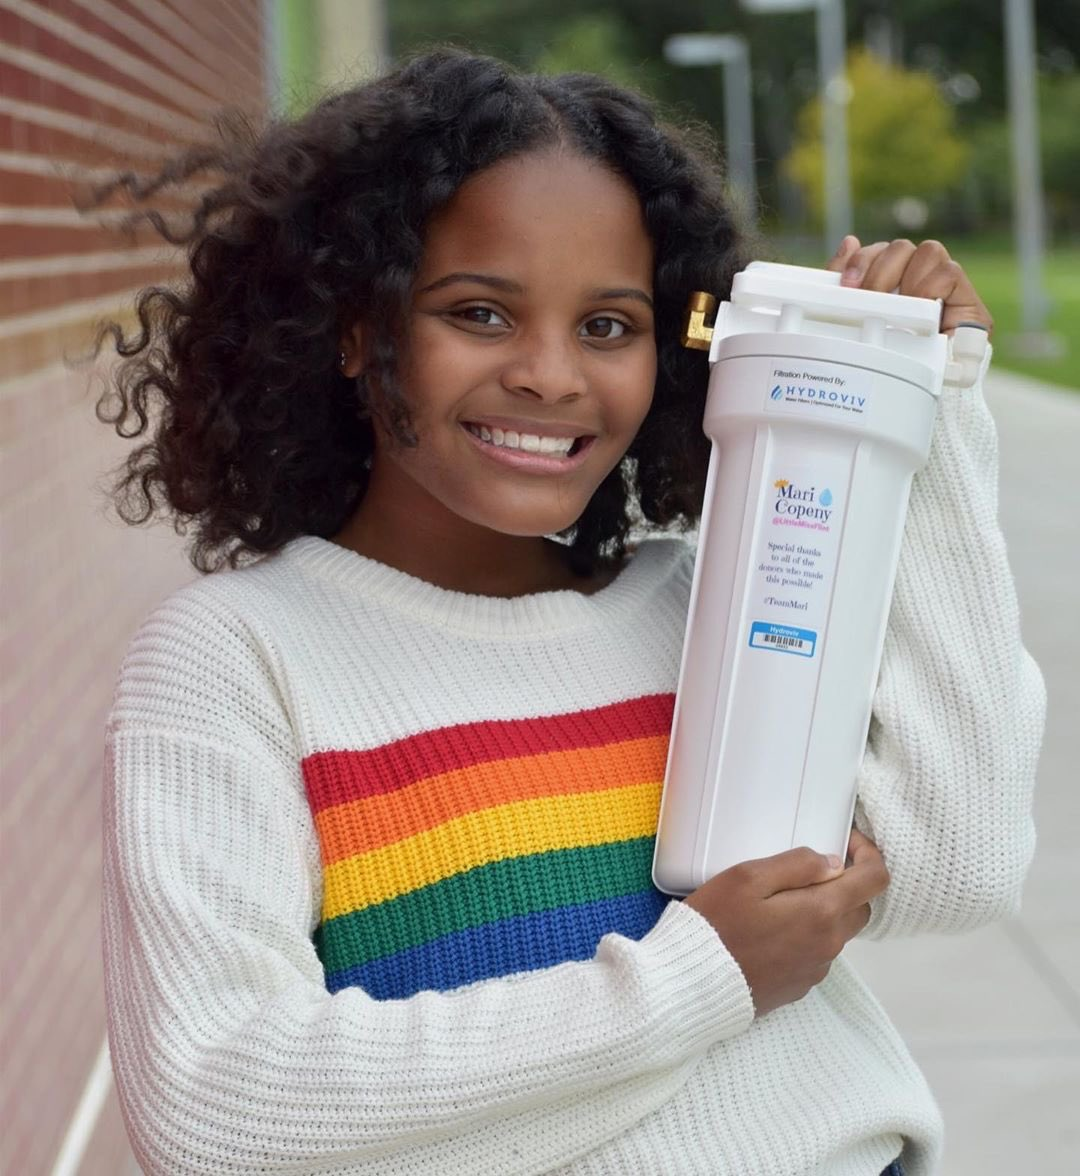 If you can, please consider supporting @LittleMissFlint's GoFundMe to help bring clean water to communities in America that are also facing a water crisis: gofundme.com/f/TeamMariWater